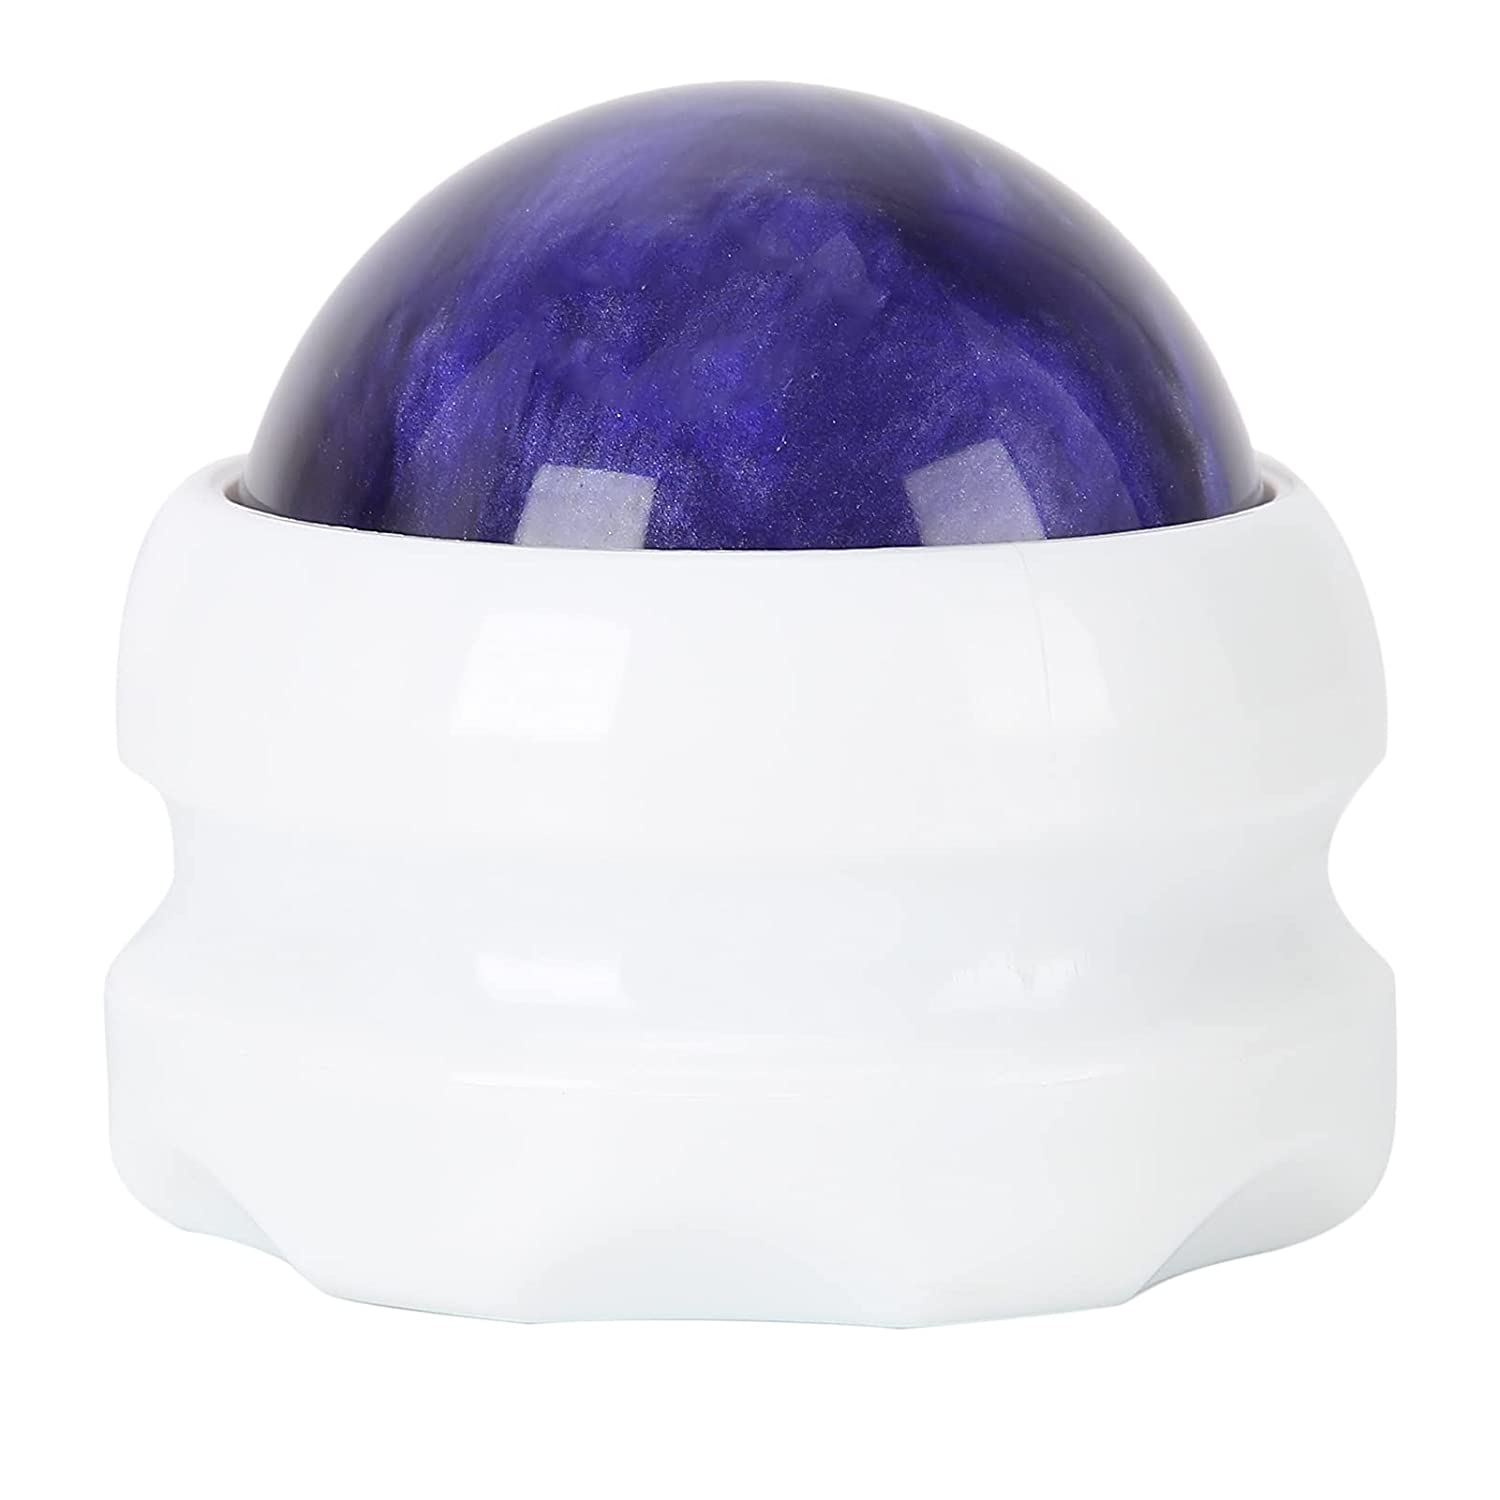 Different Gift Manual Massage Ball Muscle 2021 Relaxation Max 67% OFF